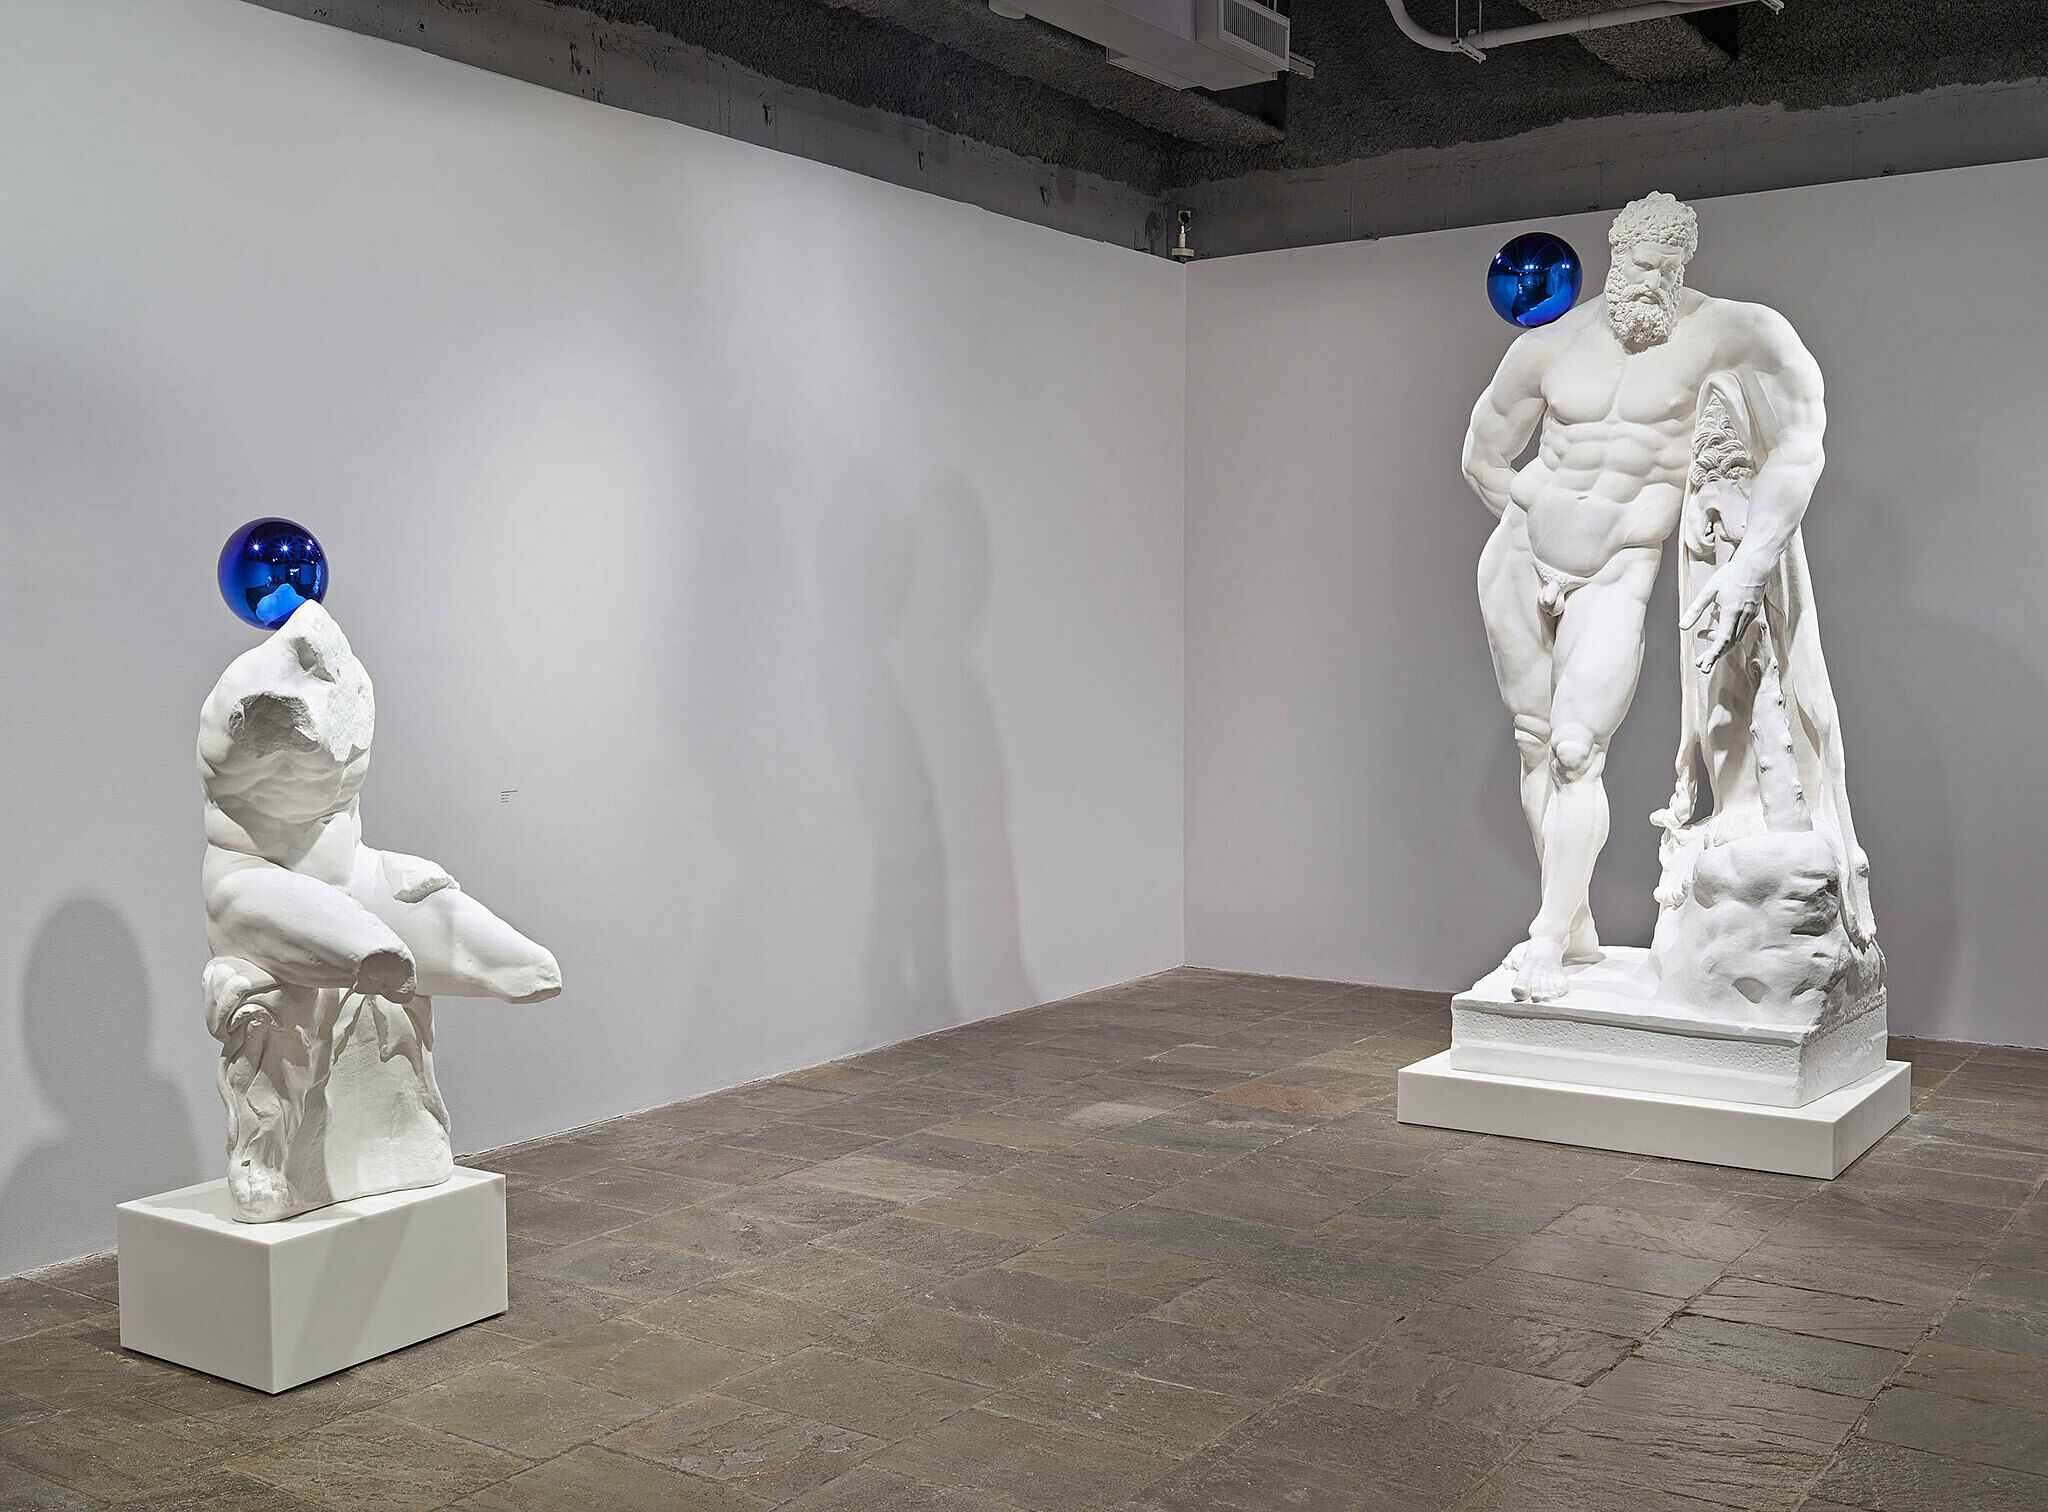 Two Koons statues with a blue ball balanced on their shoulders.